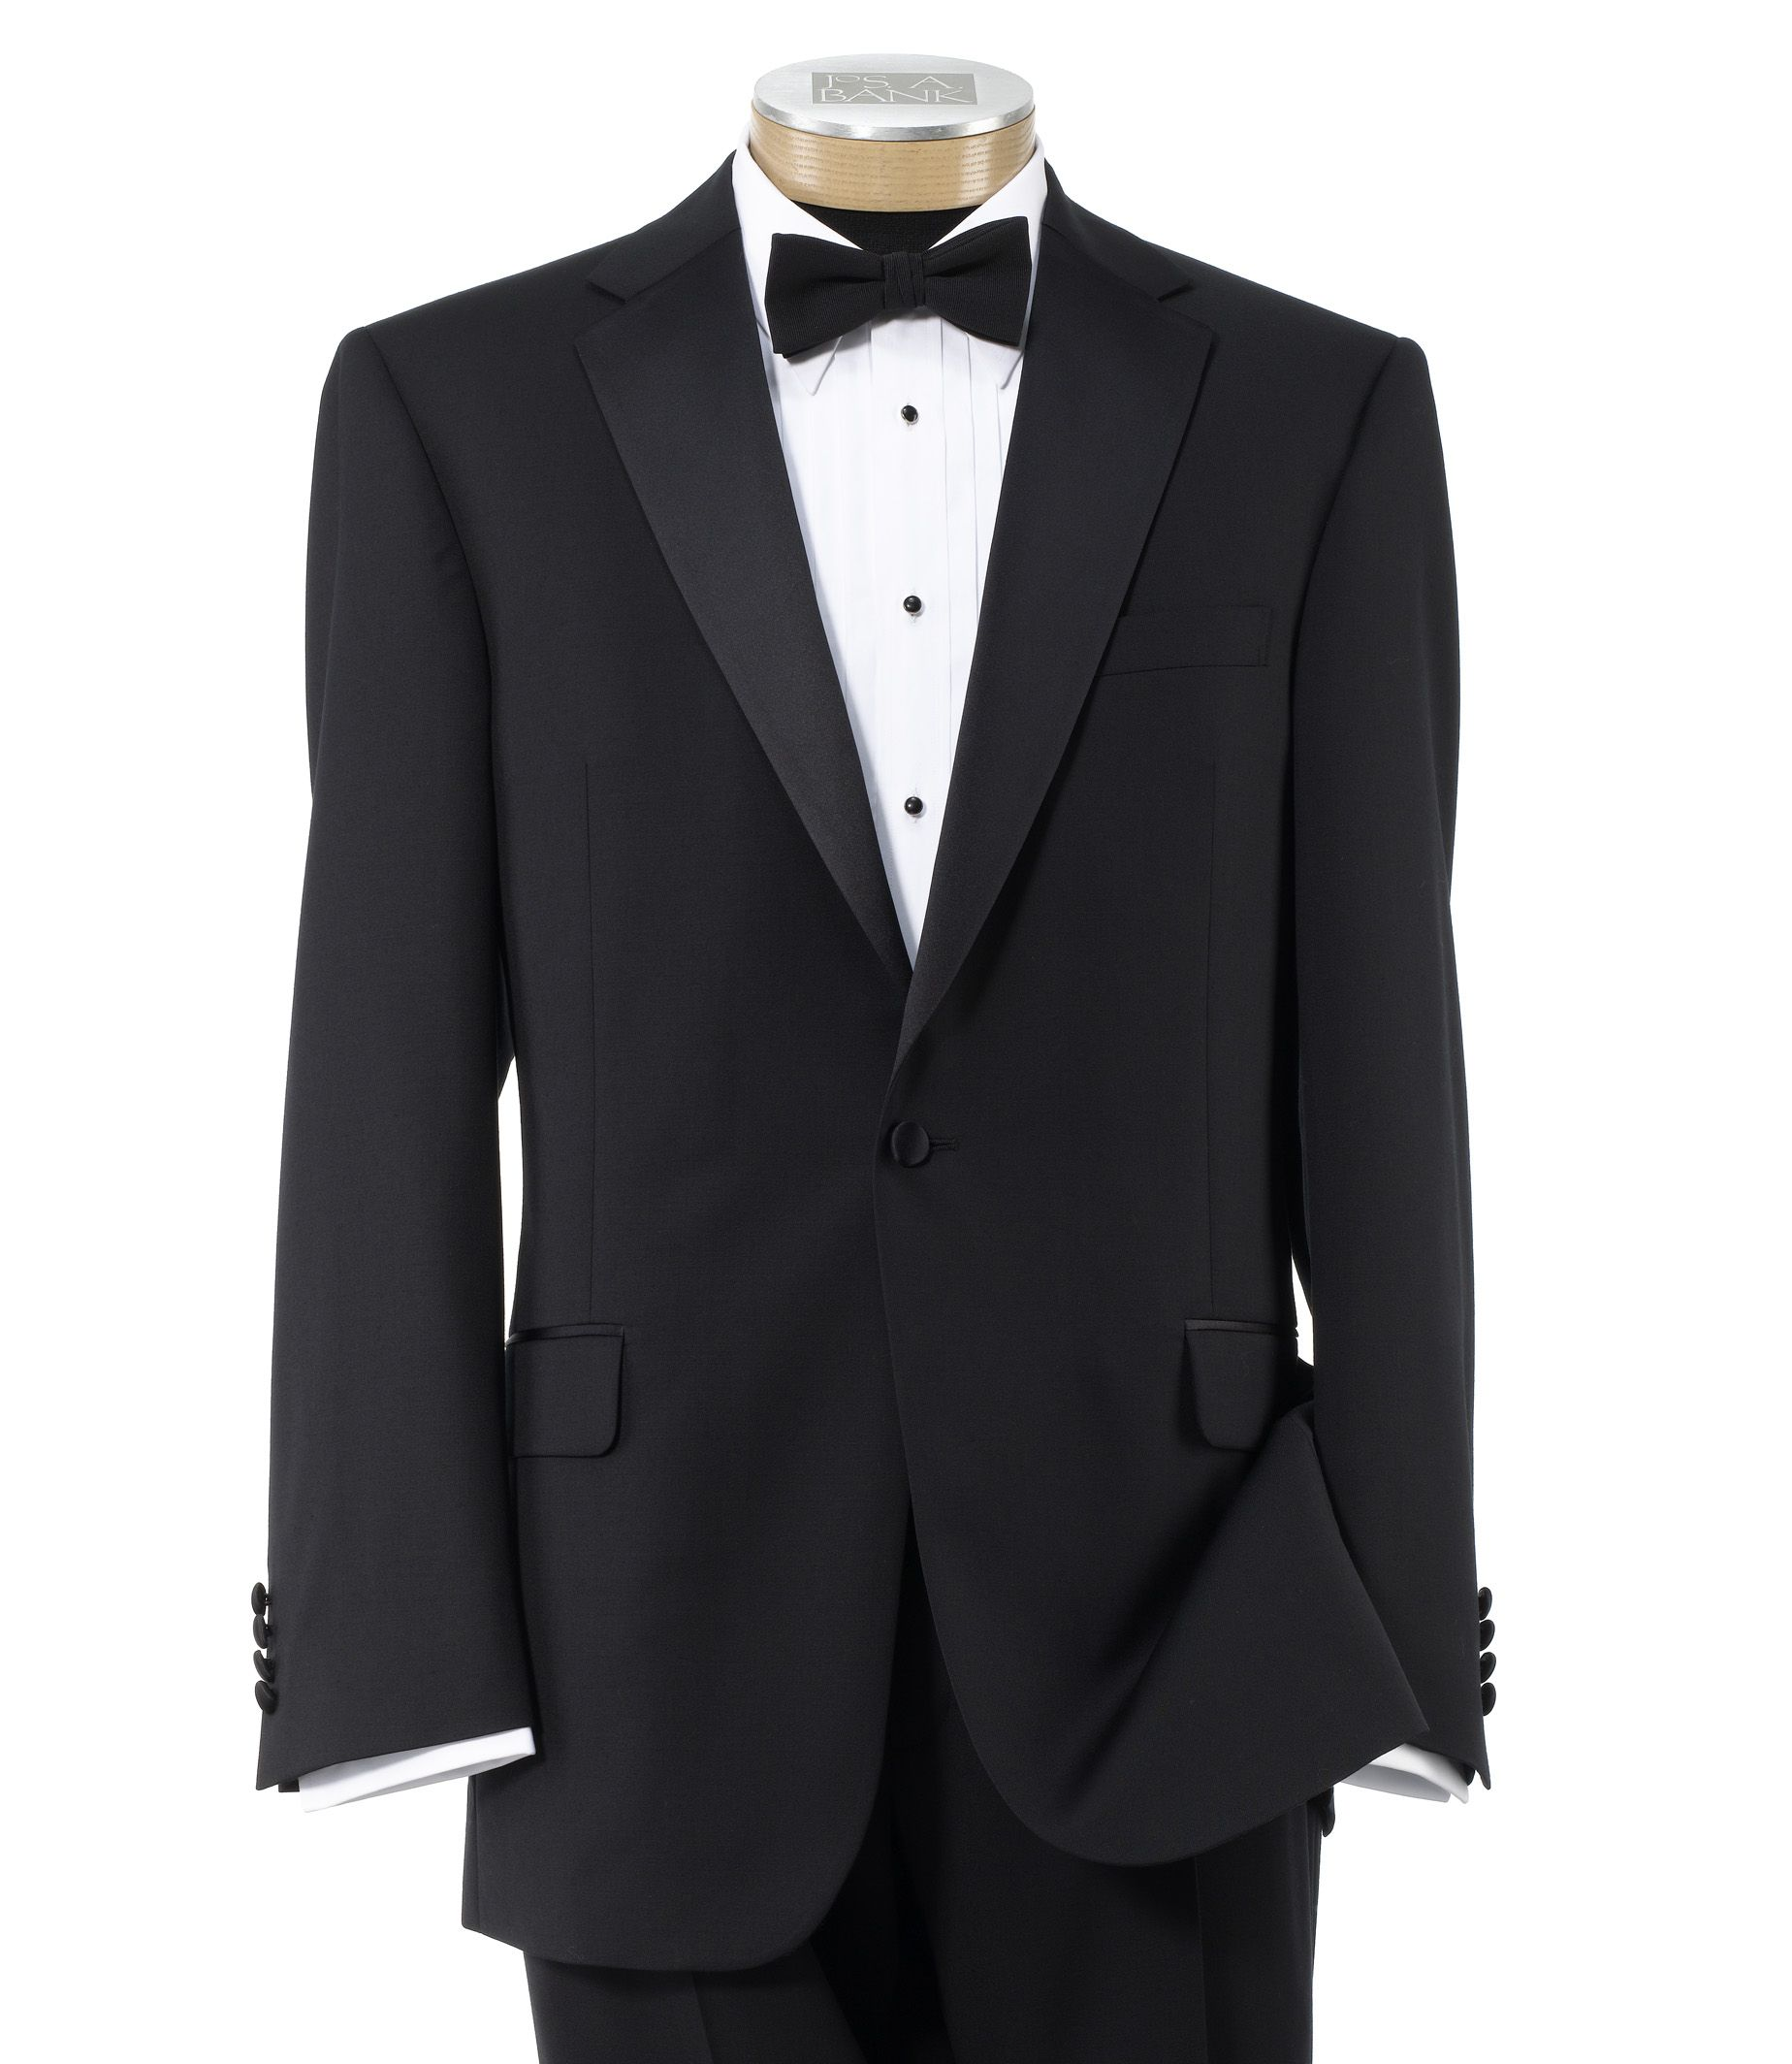 Traveler Tailored Fit Tuxedo with Plain Front Trousers